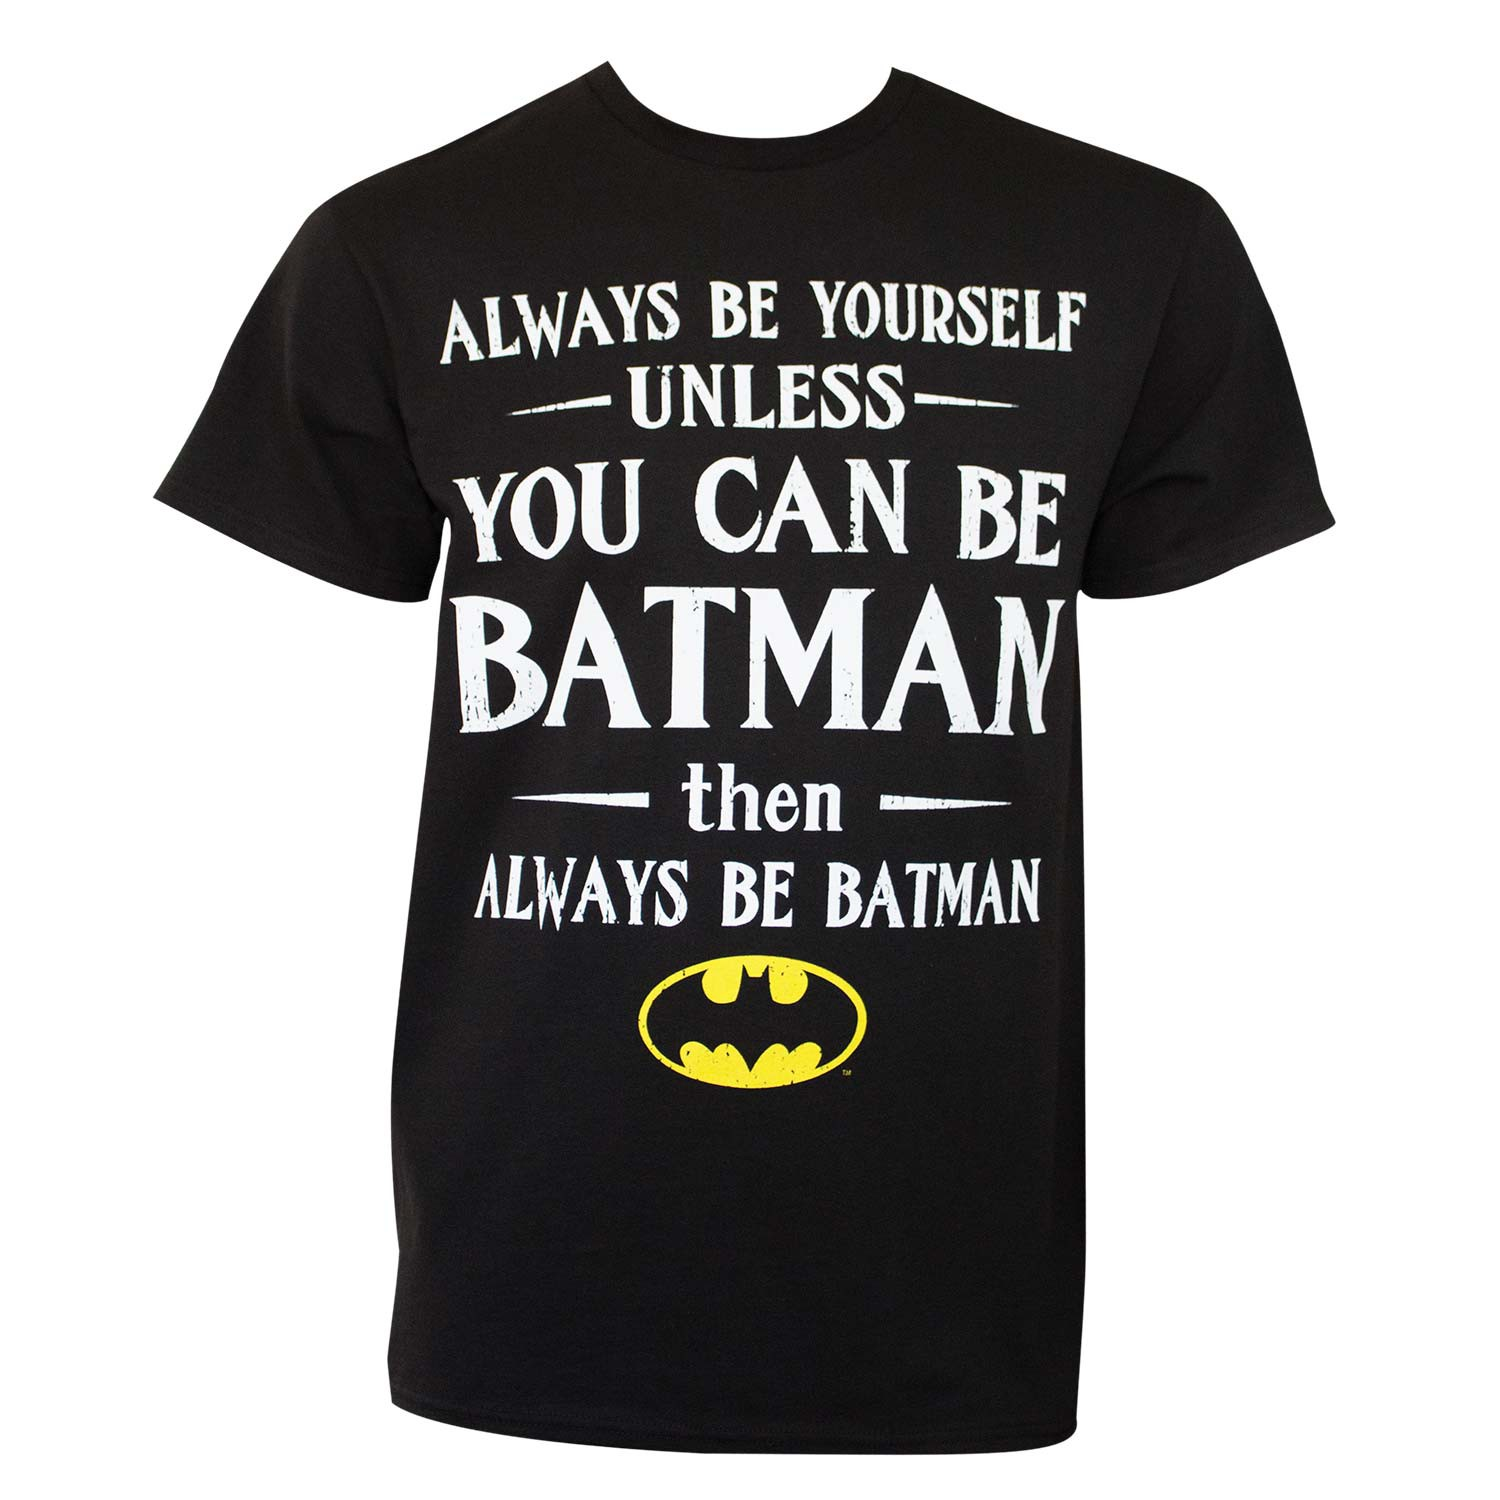 Batman Men's Black Always Be Yourself T-Shirt